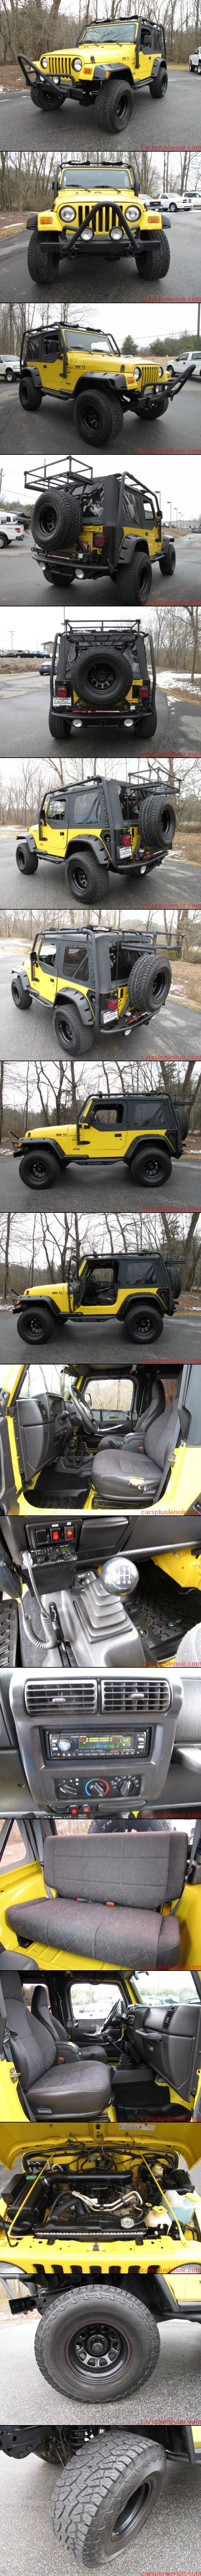 2001 Jeep Wrangler 4WD 2DR Sport OHV TJ - AM/FM Stereo, MP3 Player, Midland CB Radio, Brush Guard, Pacer Alloy Wheels, Mud Guards, Rollcage, Cargo Cage, 4.0L I6 SFI